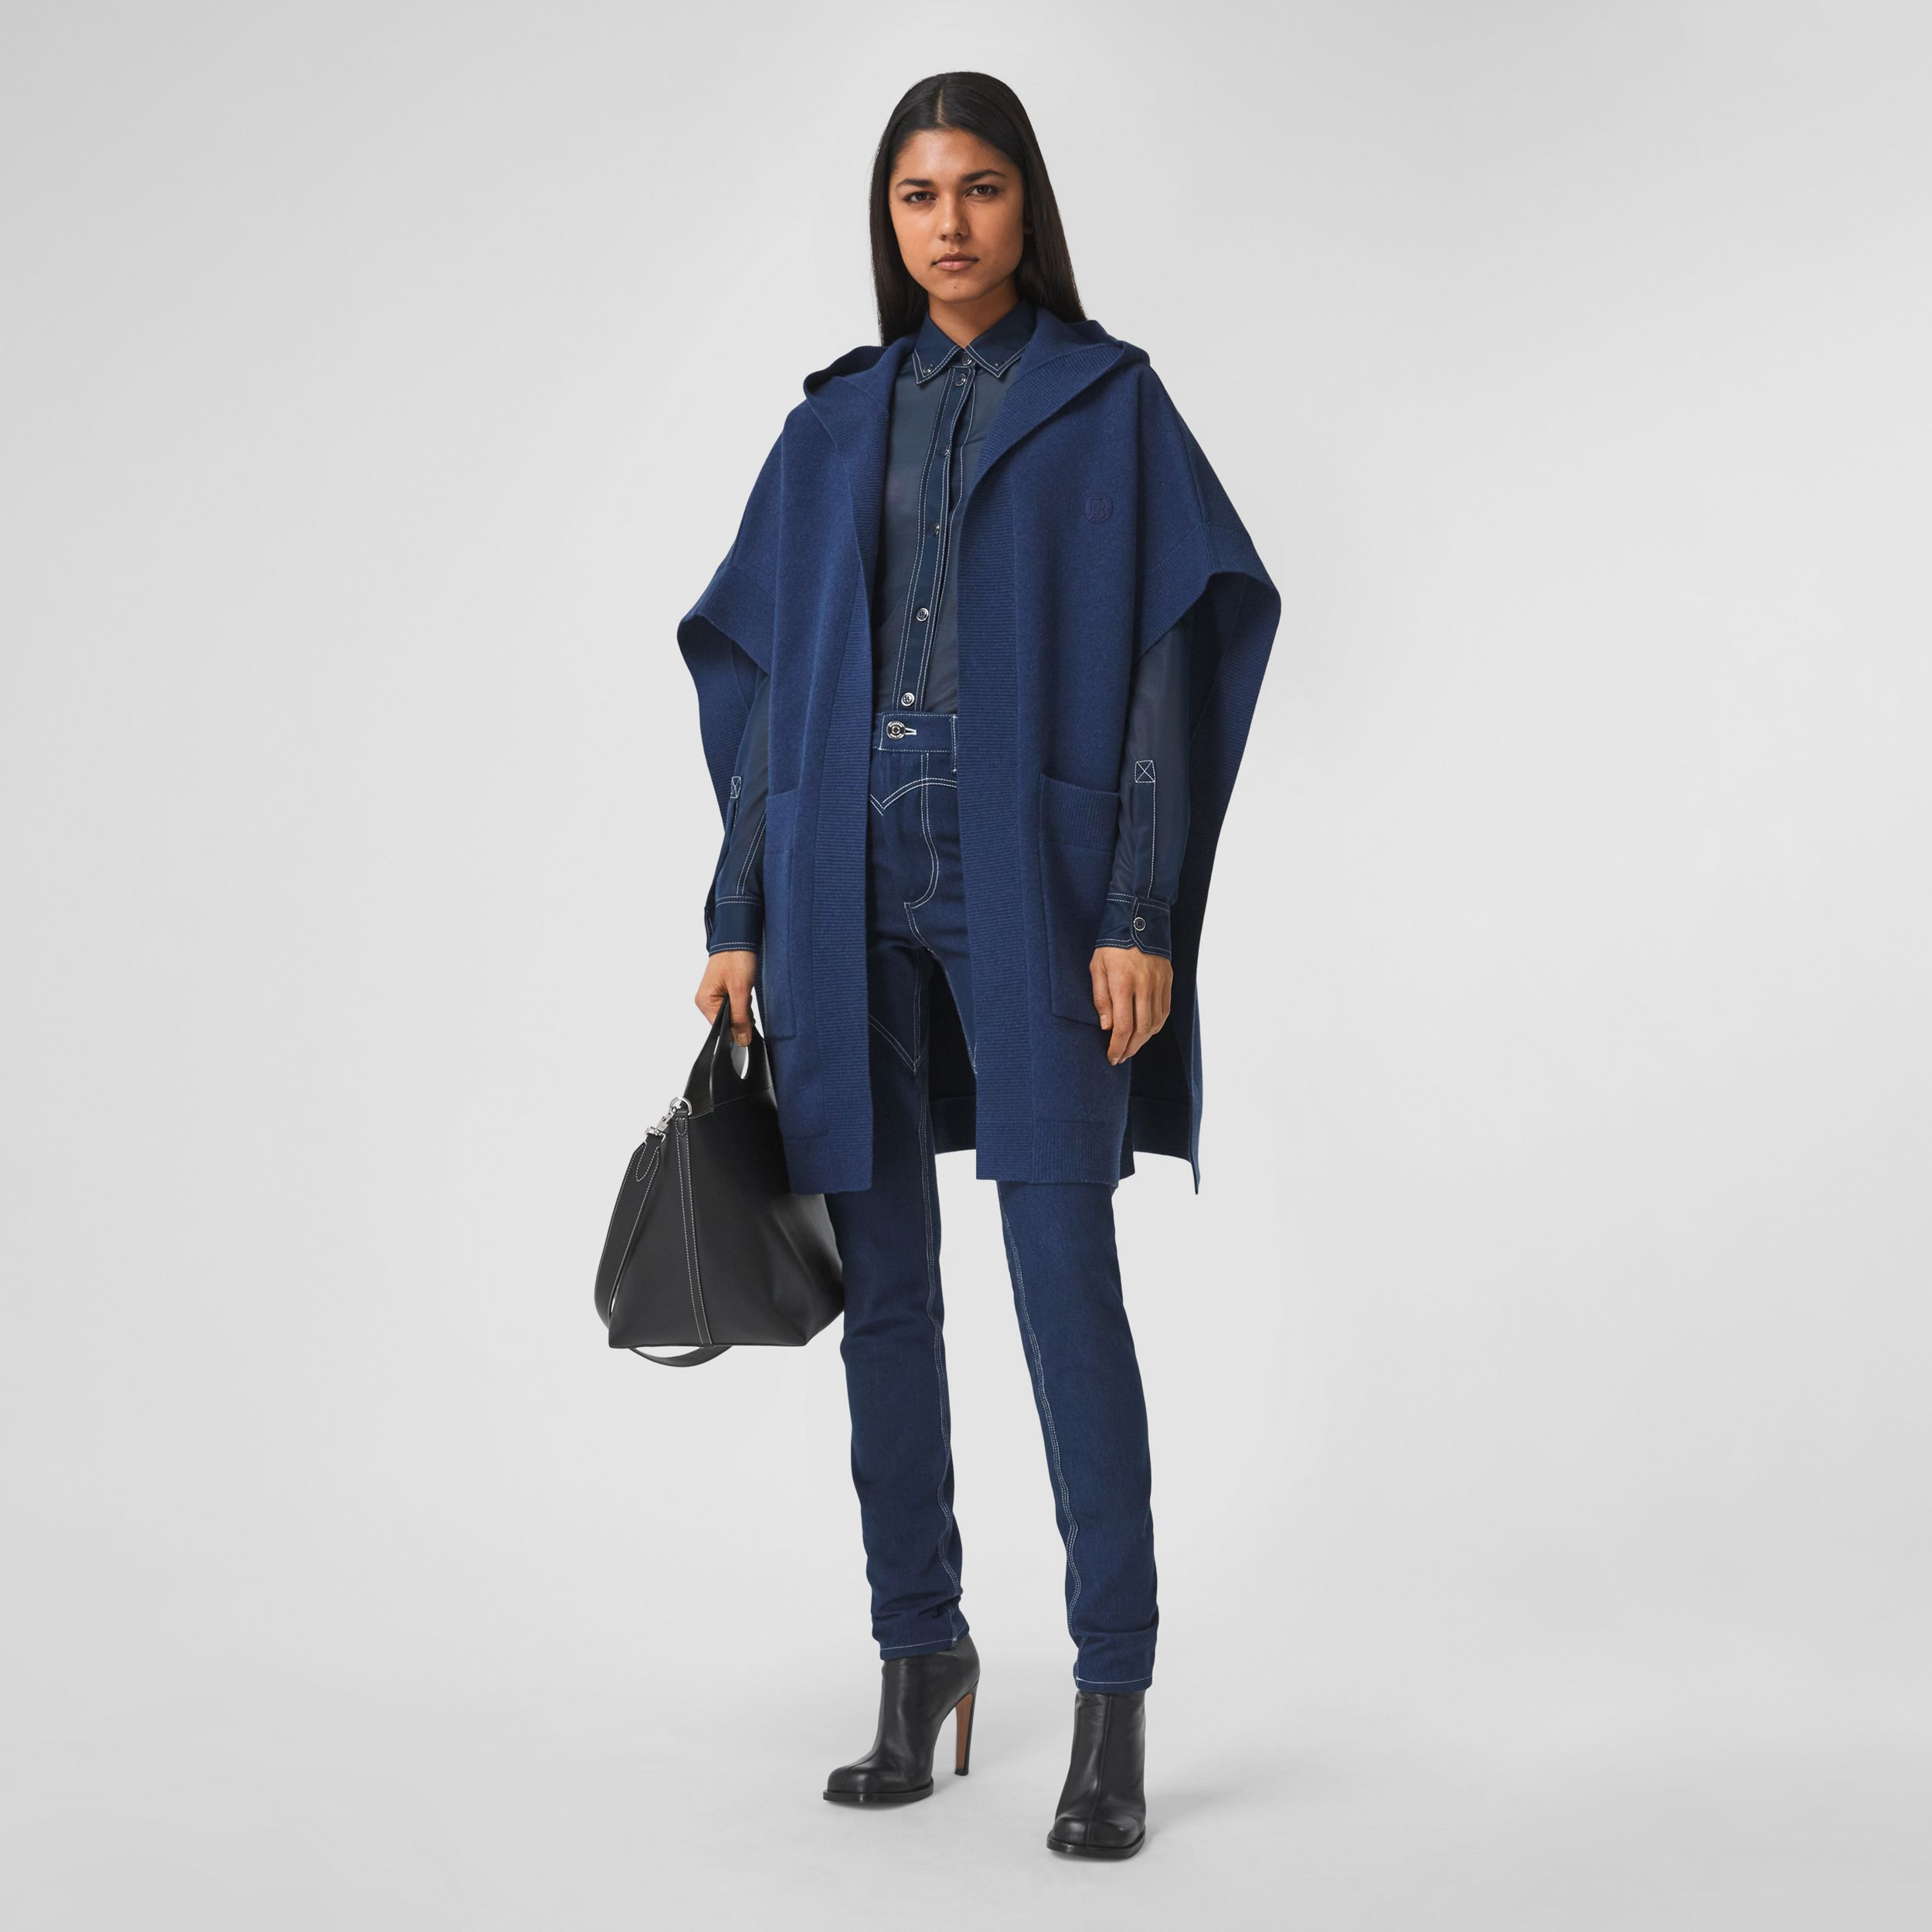 Monogram Motif Cashmere Blend Hooded Cape in Ink Blue - Women | Burberry - 1